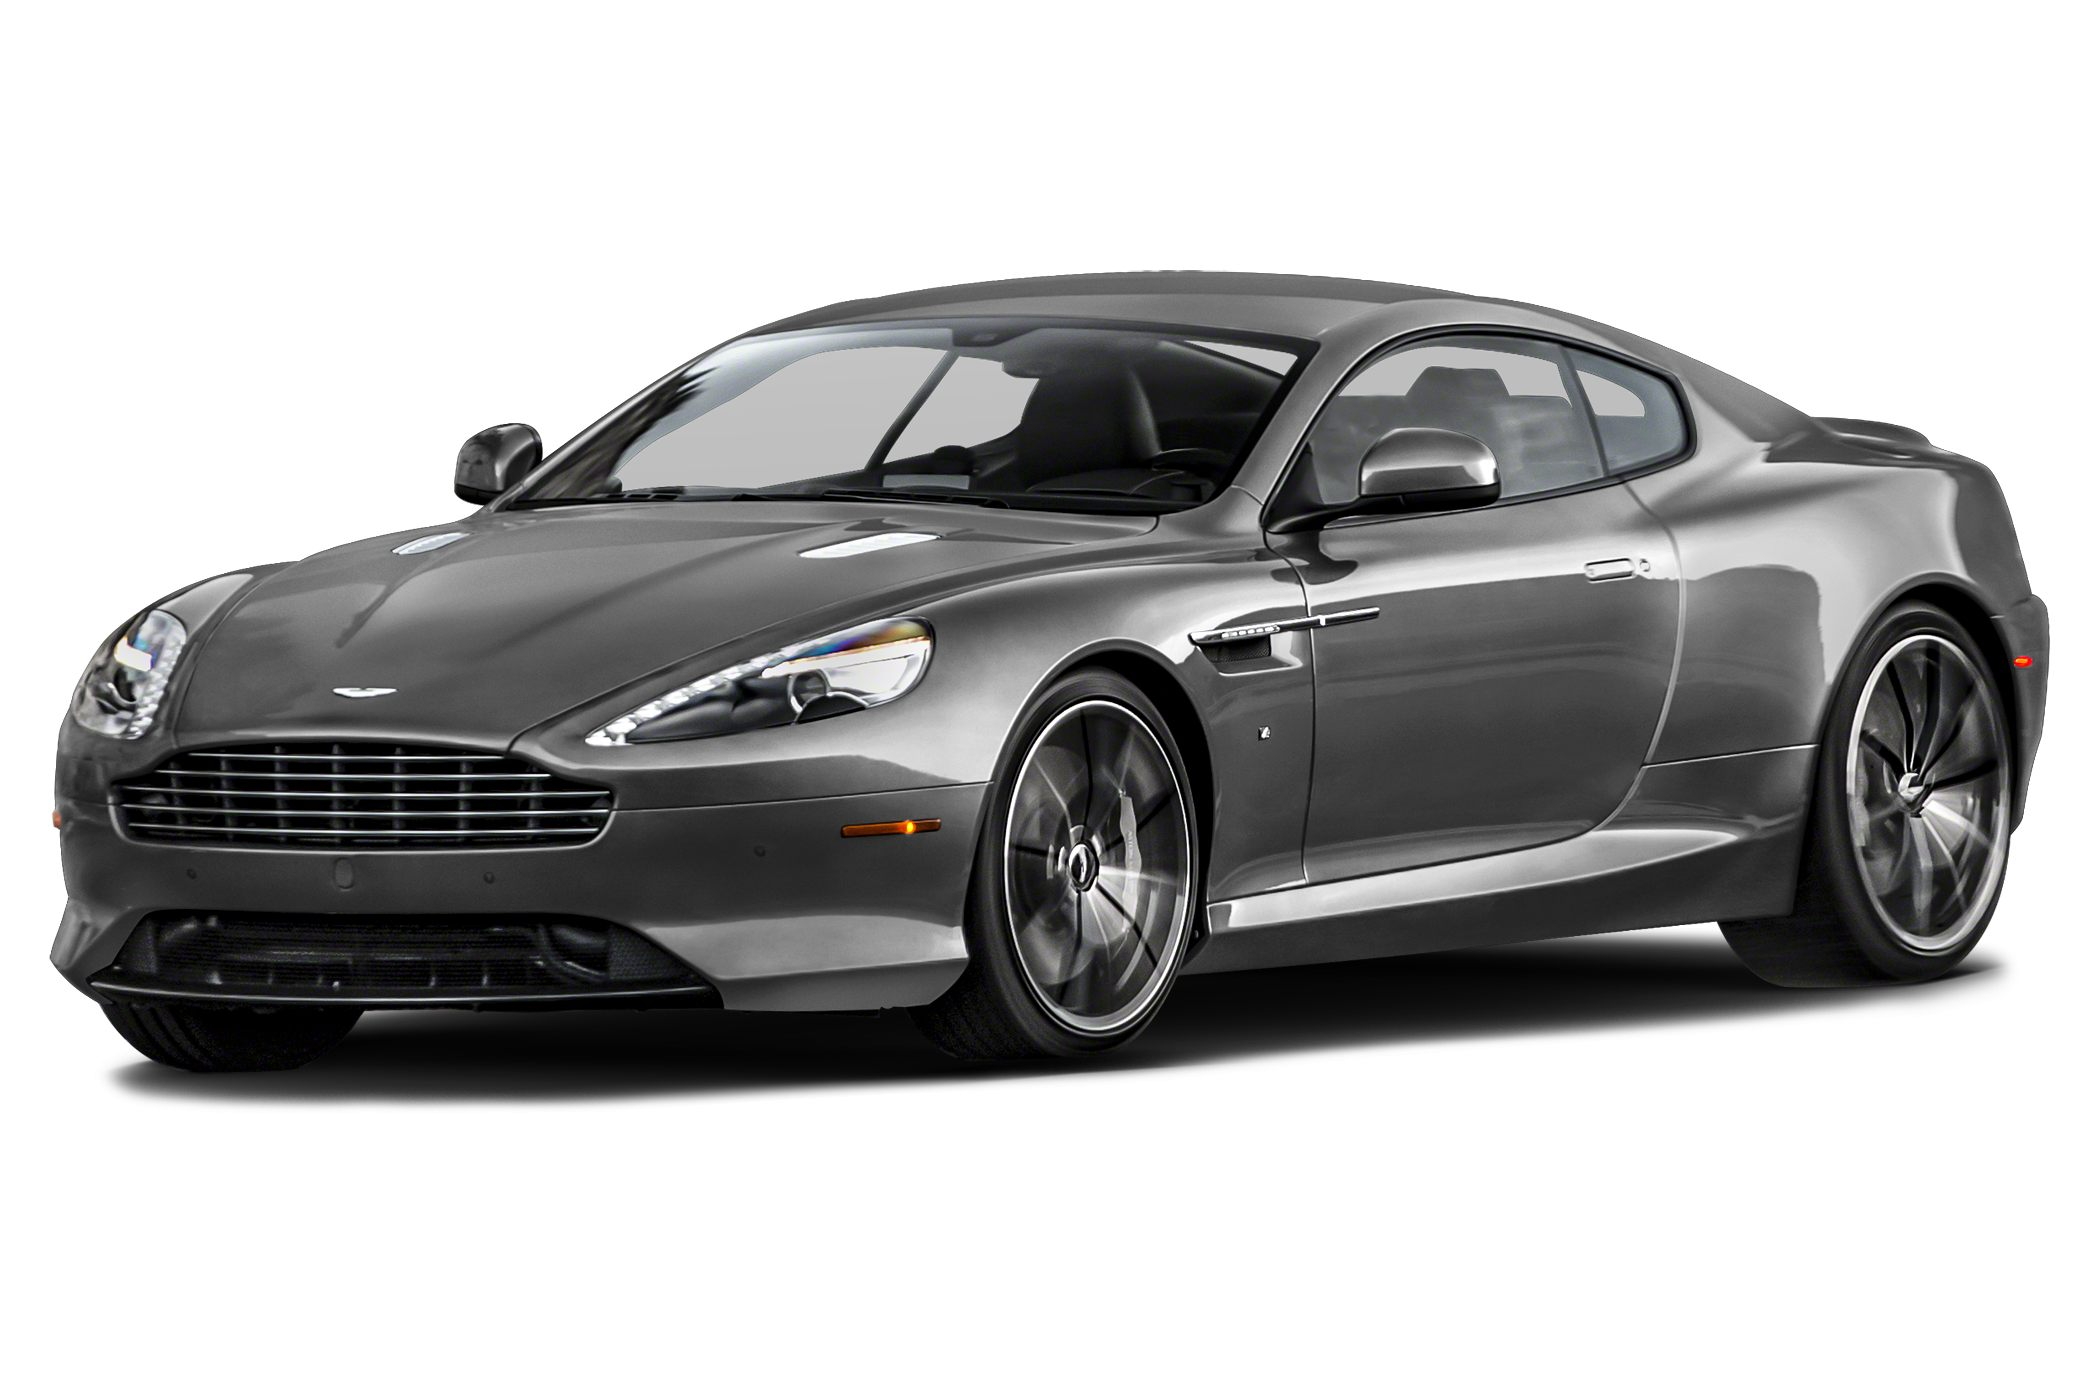 Aston Martin DB9 News, Photos And Buying Information